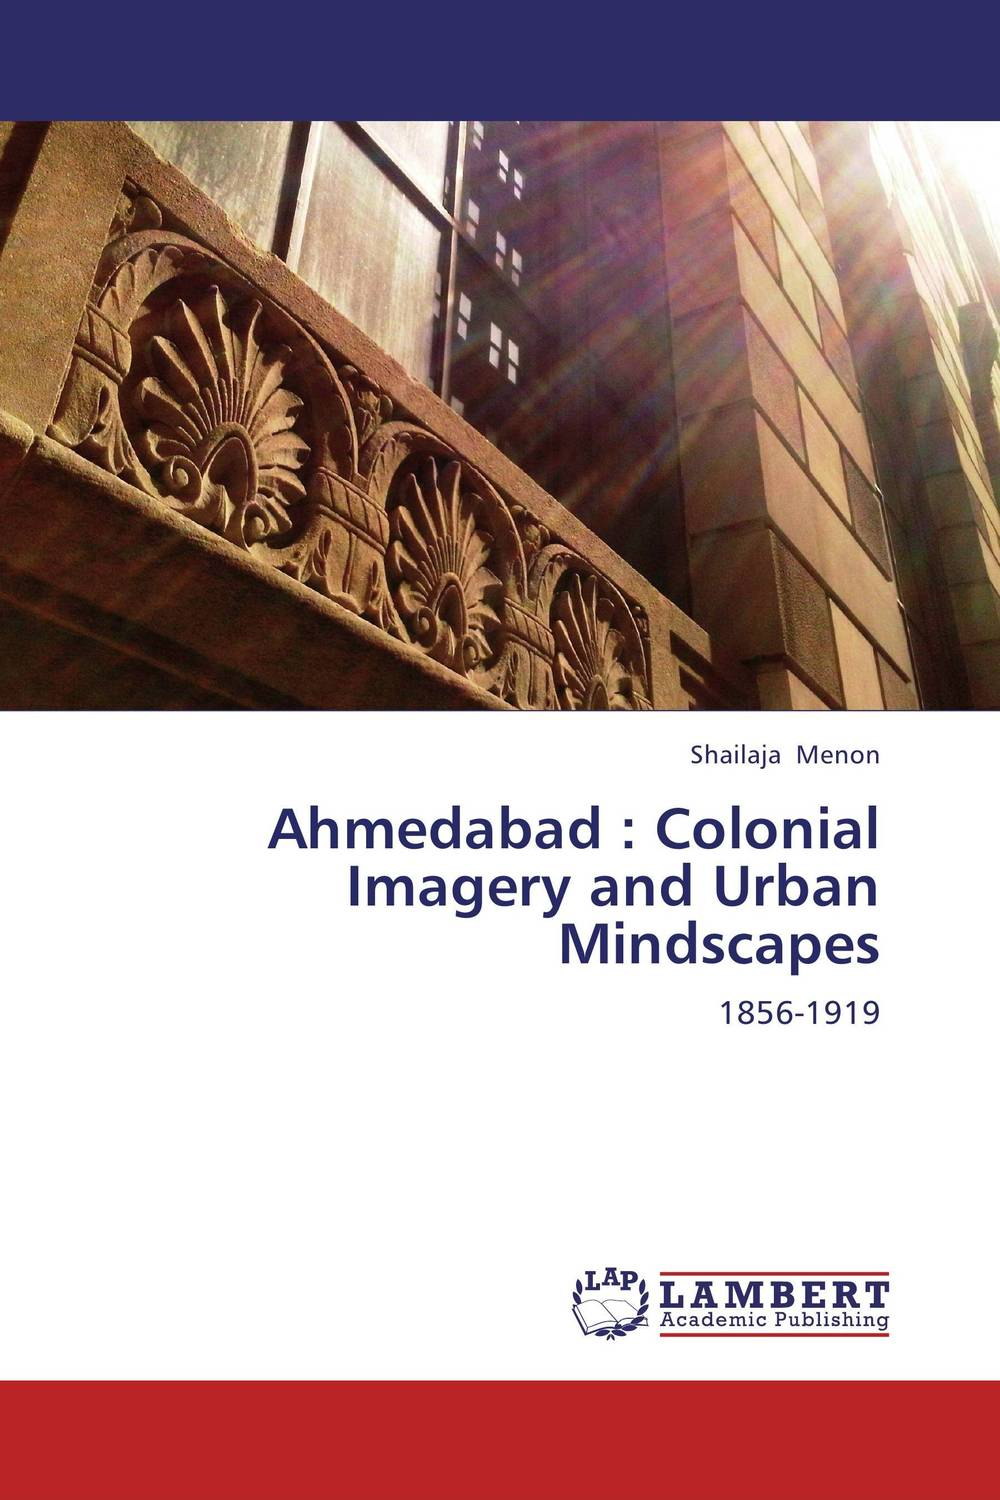 Ahmedabad : Colonial Imagery and Urban Mindscapes psychiatric disorders in postpartum period